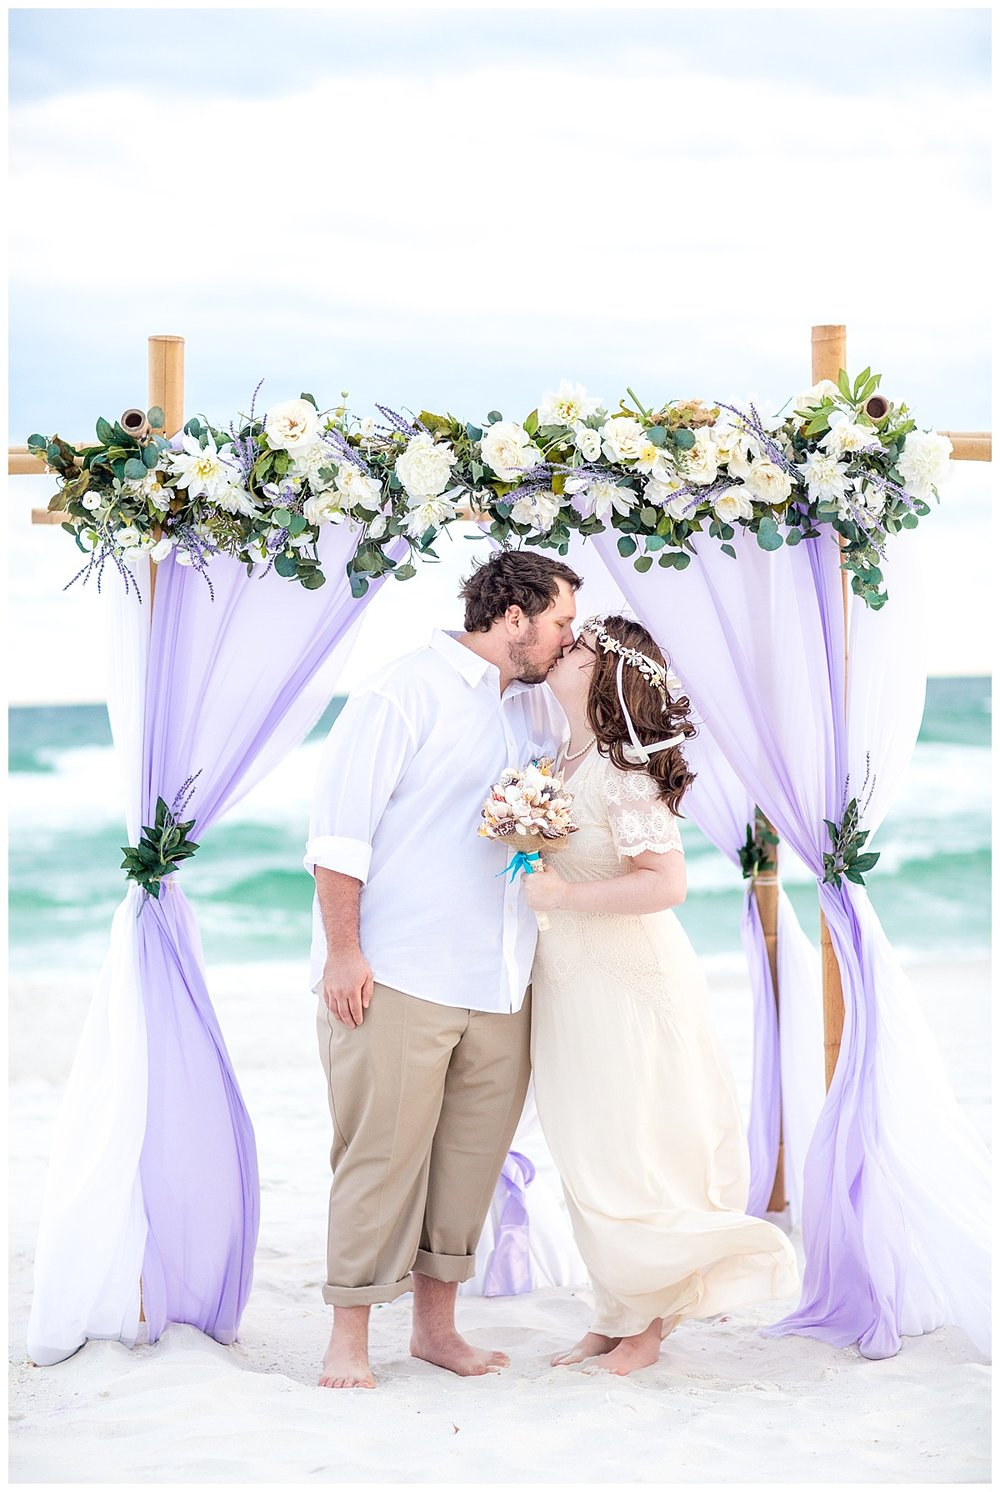 7 Wedding Couple under the wedding arch .jpg